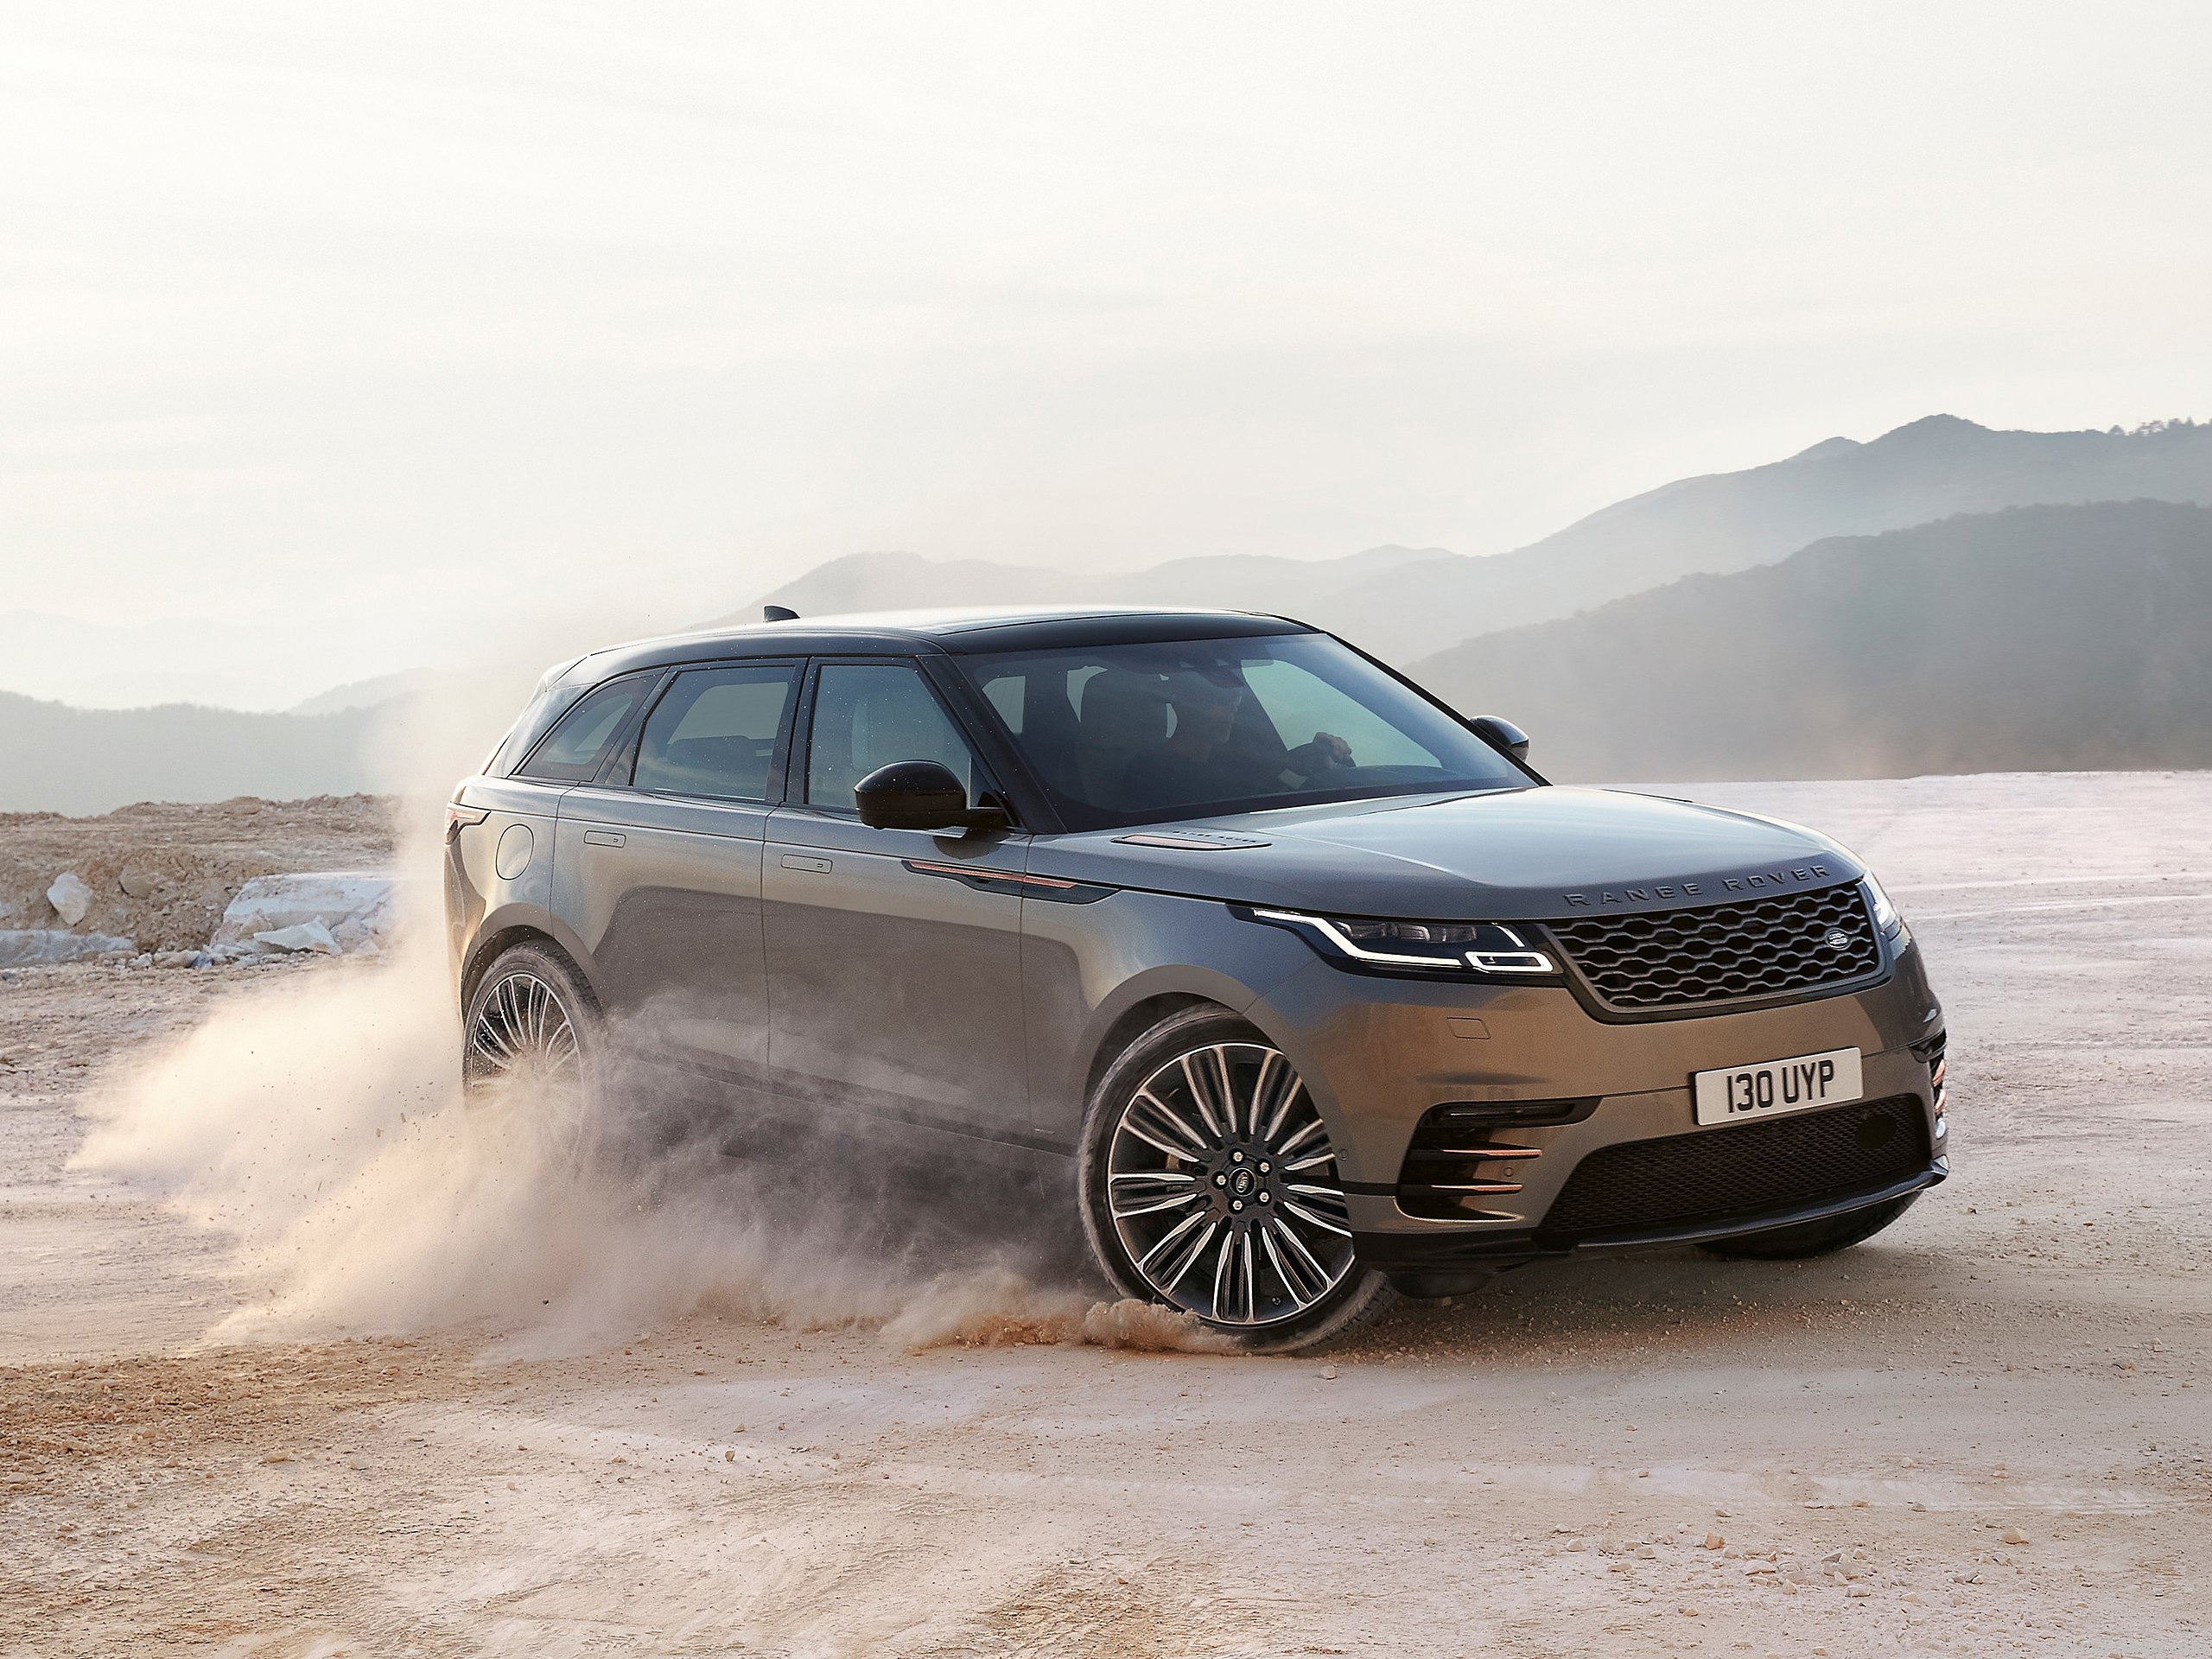 1366x768 2018 Land Rover Range Rover Velar 1366x768 Resolution Hd 4k Wallpapers Images Backgrounds Photos And Pictures